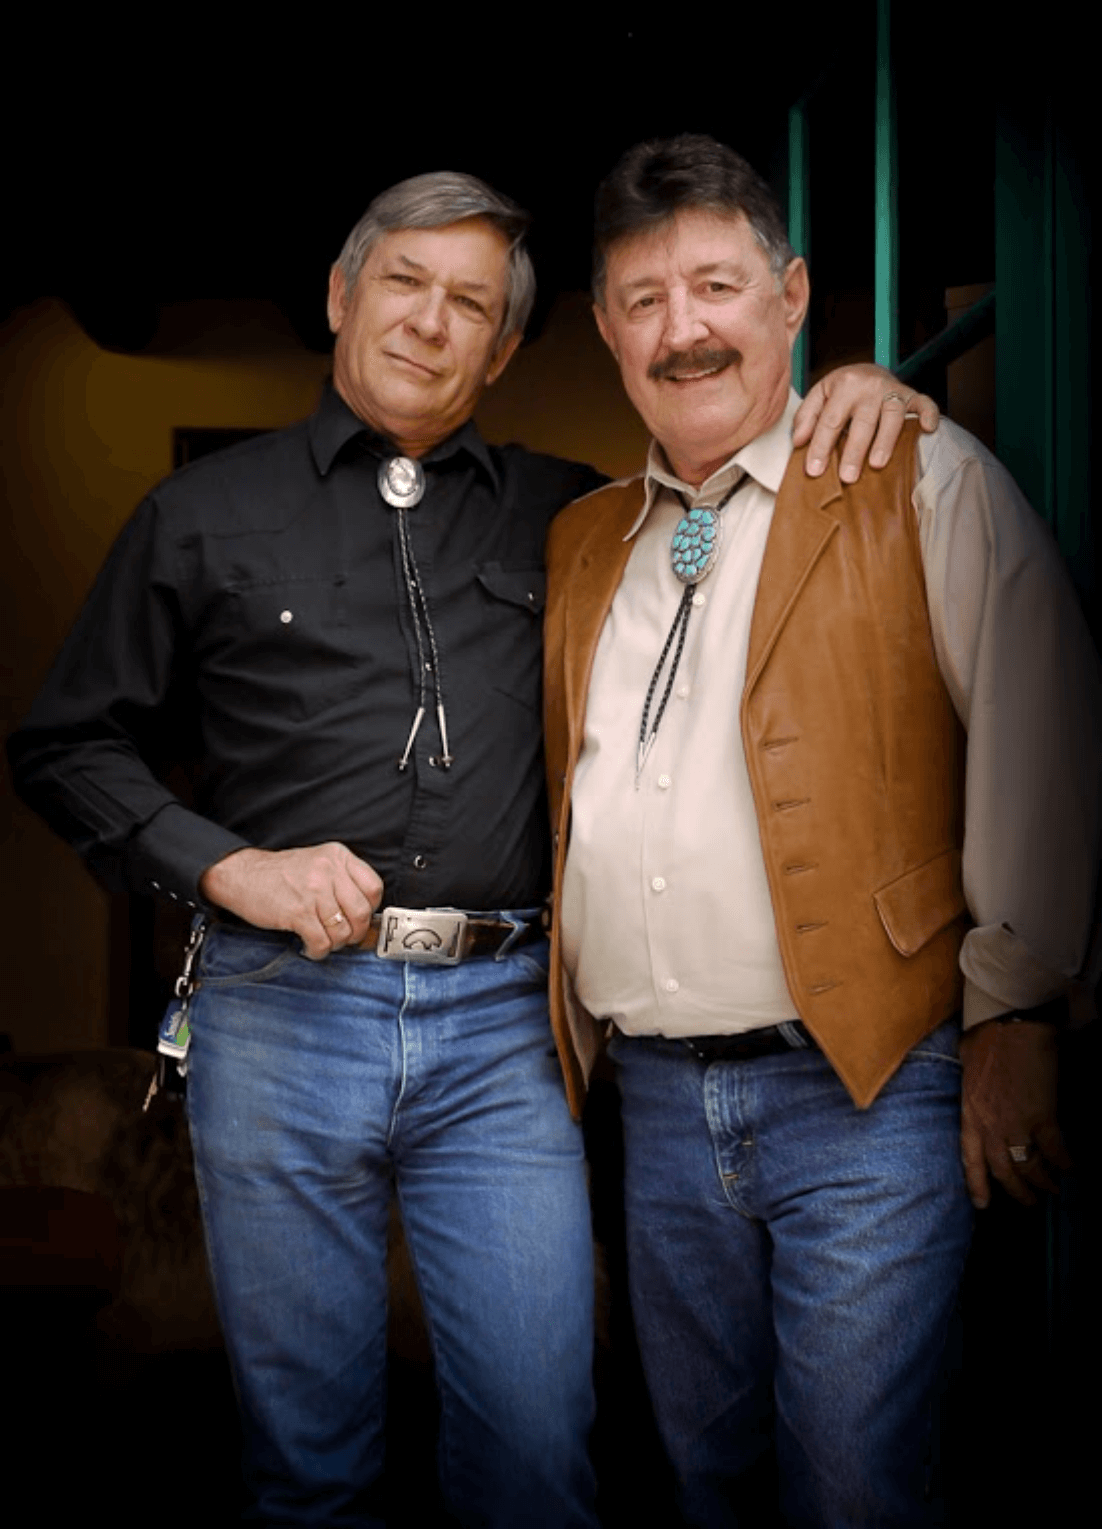 Robert Frost and Richard Bolton standing together wearing western clothing